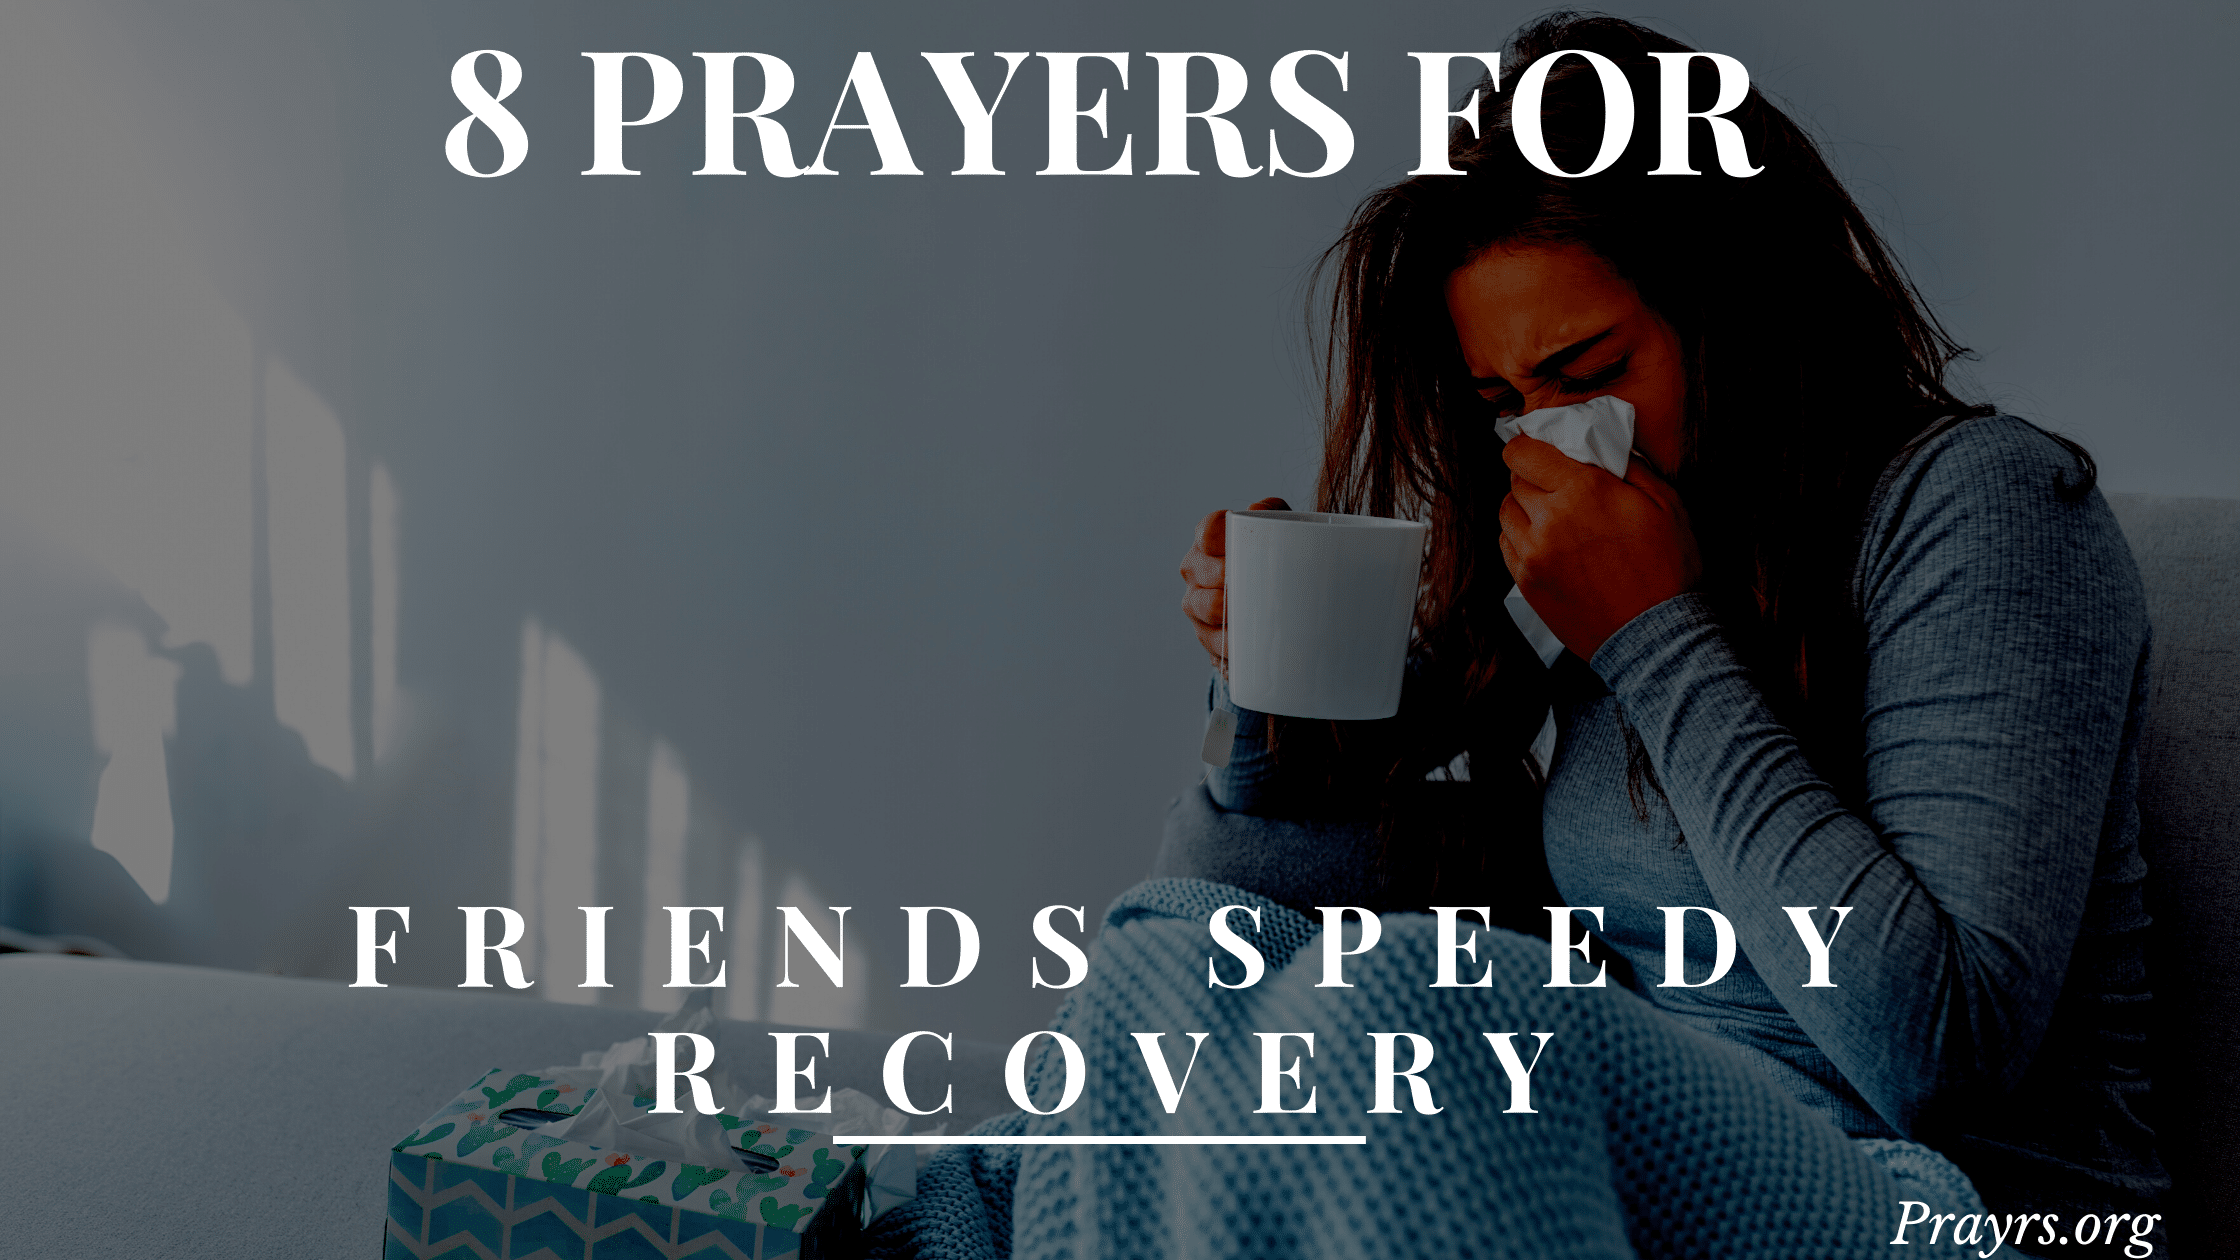 Prayers for Speedy Recovery for a Friend